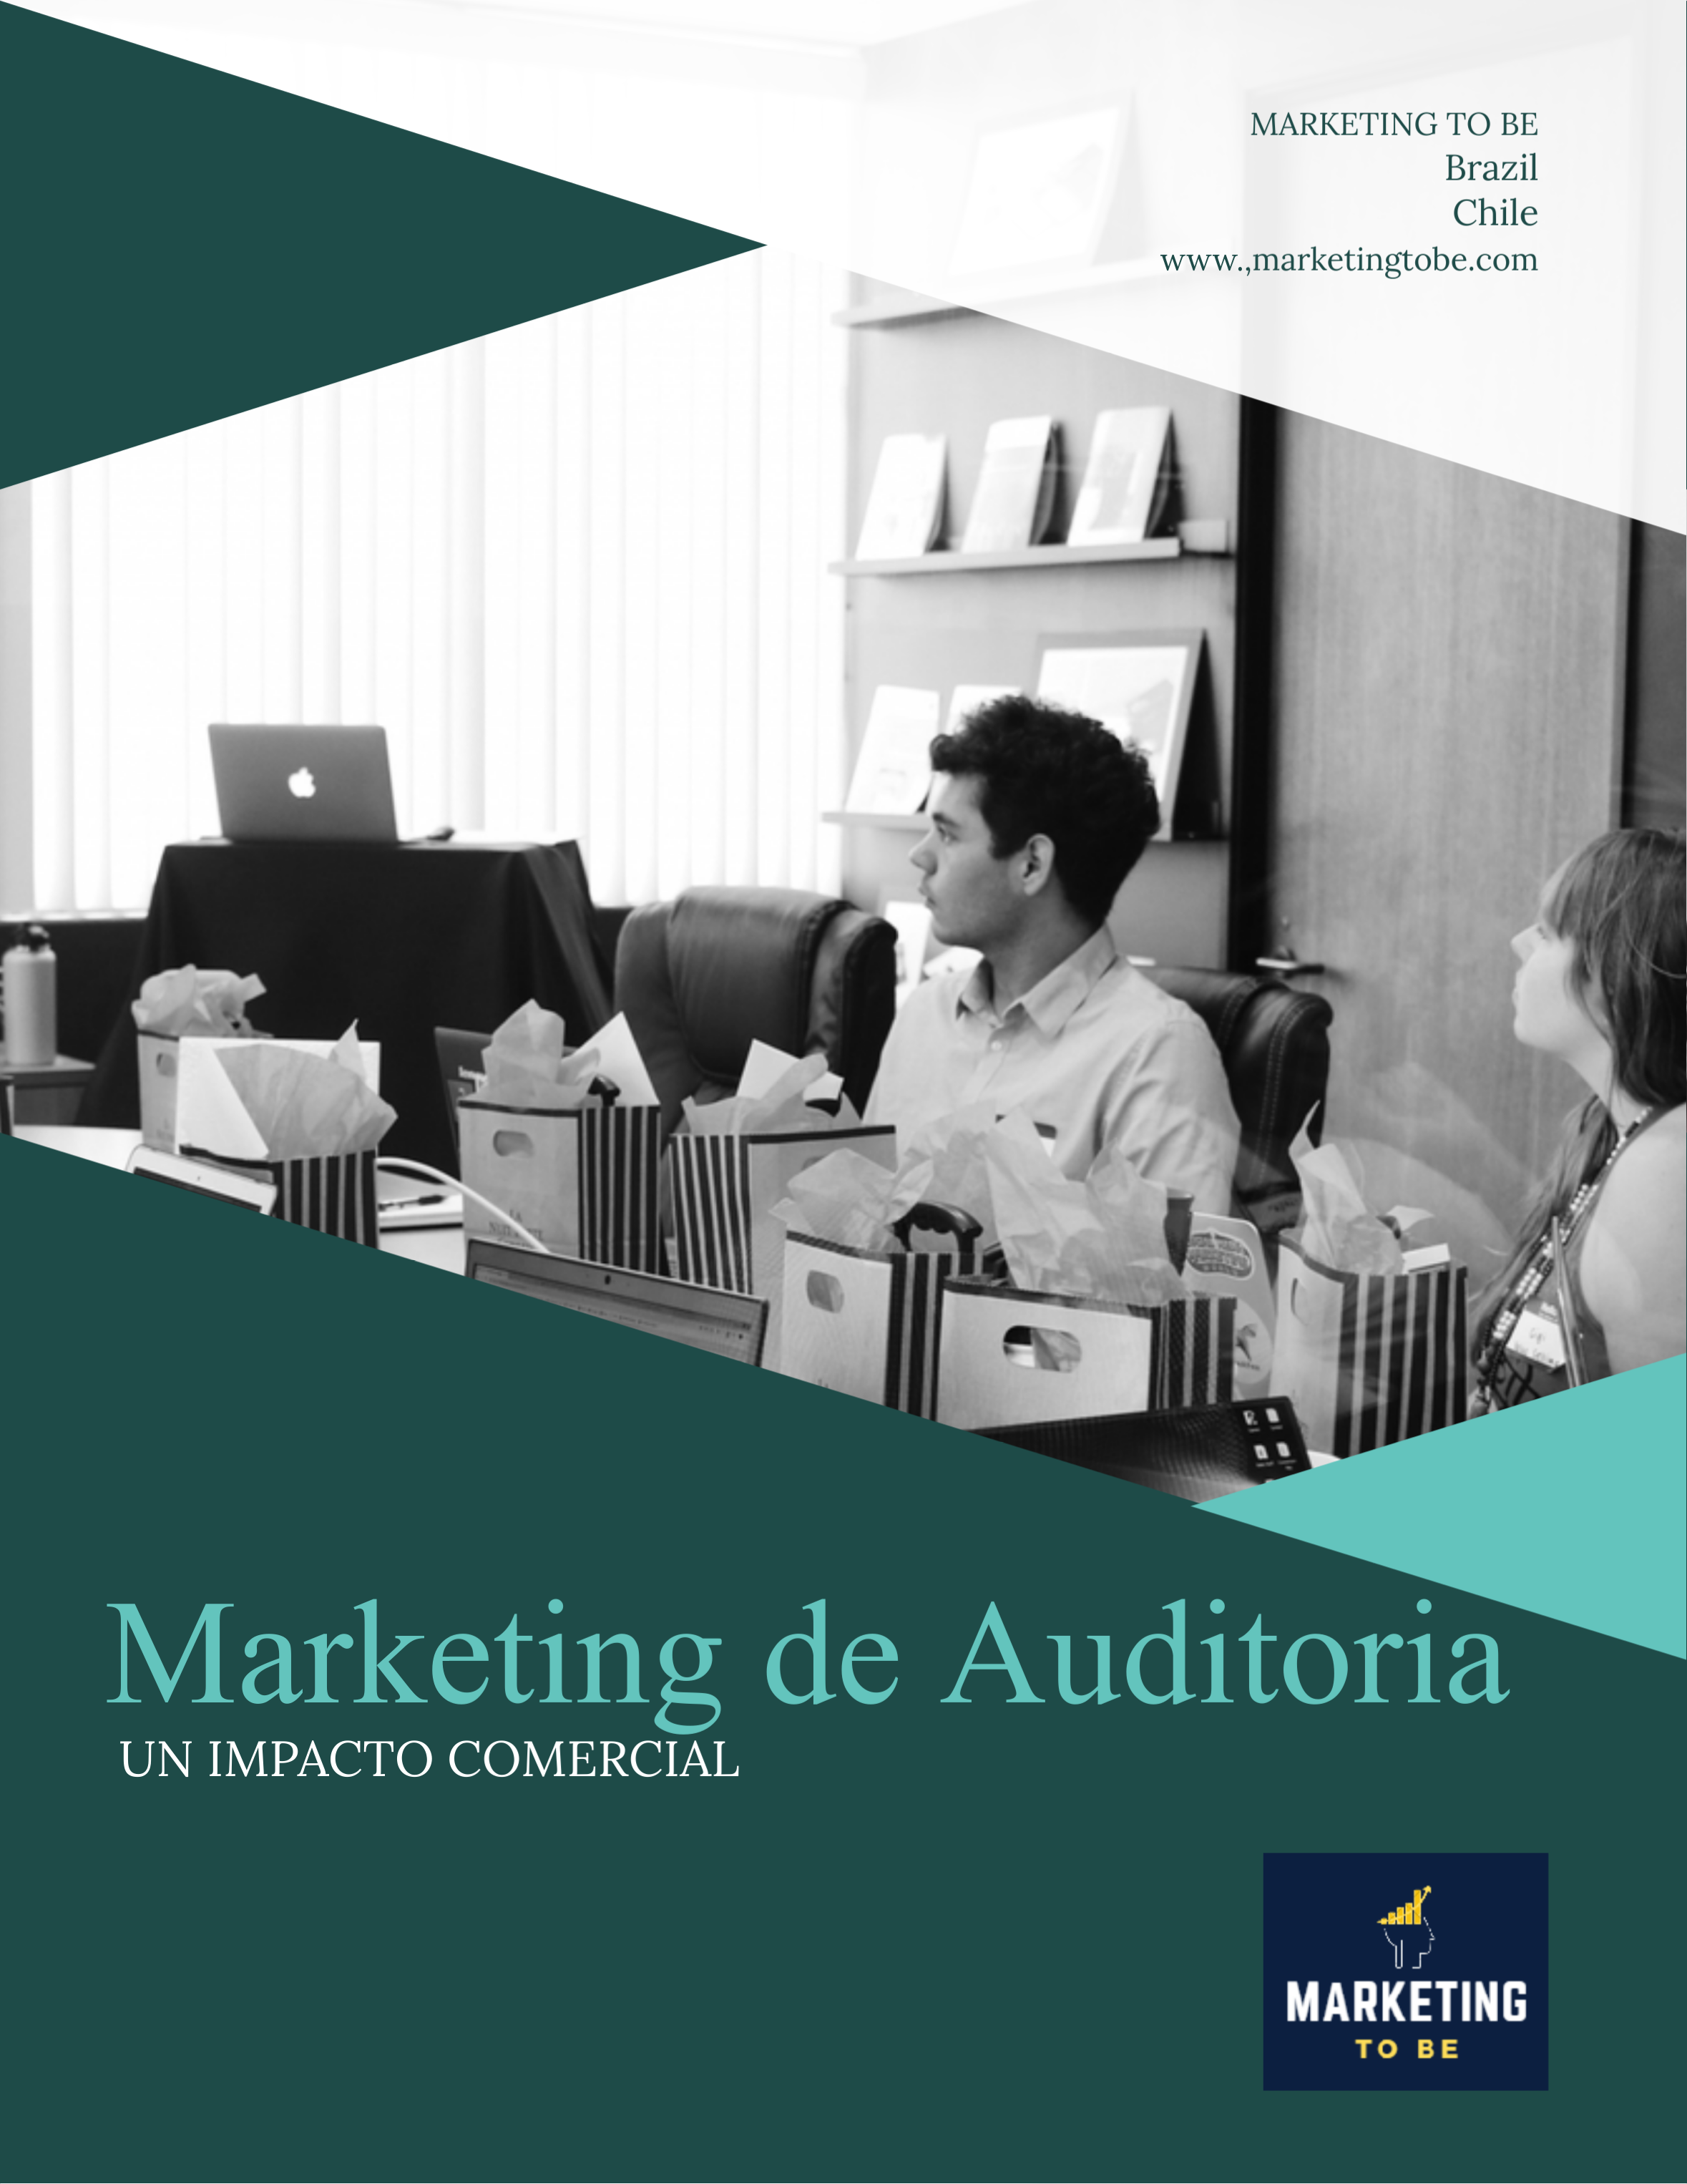 Marketing de Auditoria, un Impacto Comercial